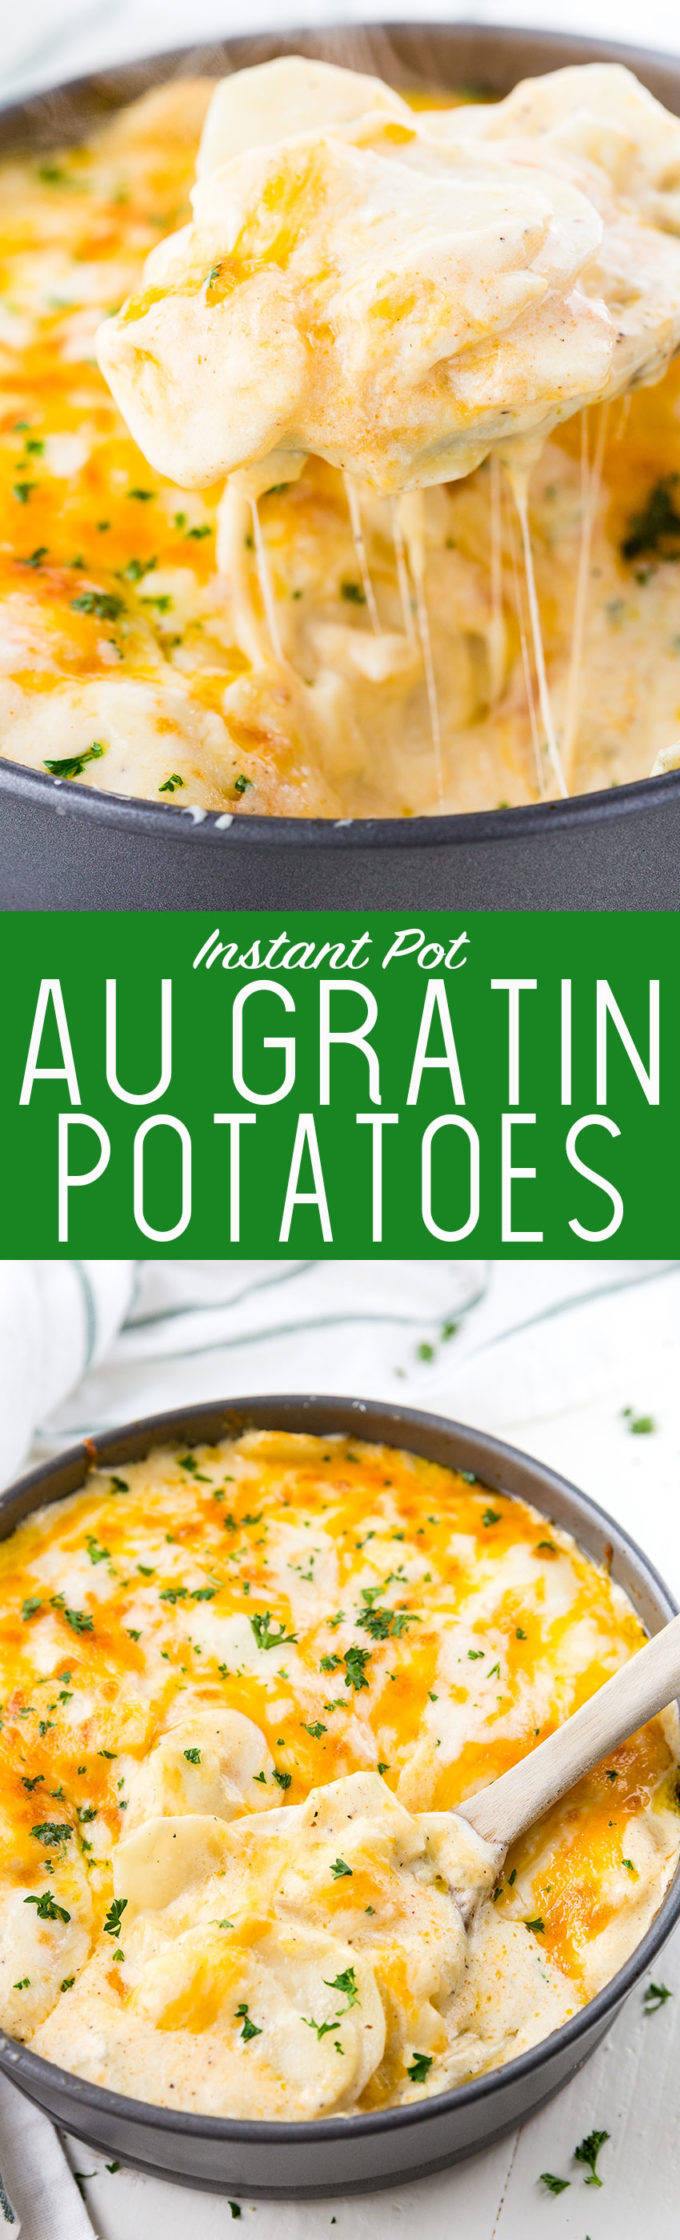 Instant Pot Au Gratin Potatoes or Scalloped Potatoes are cheesy and oh so delicious.